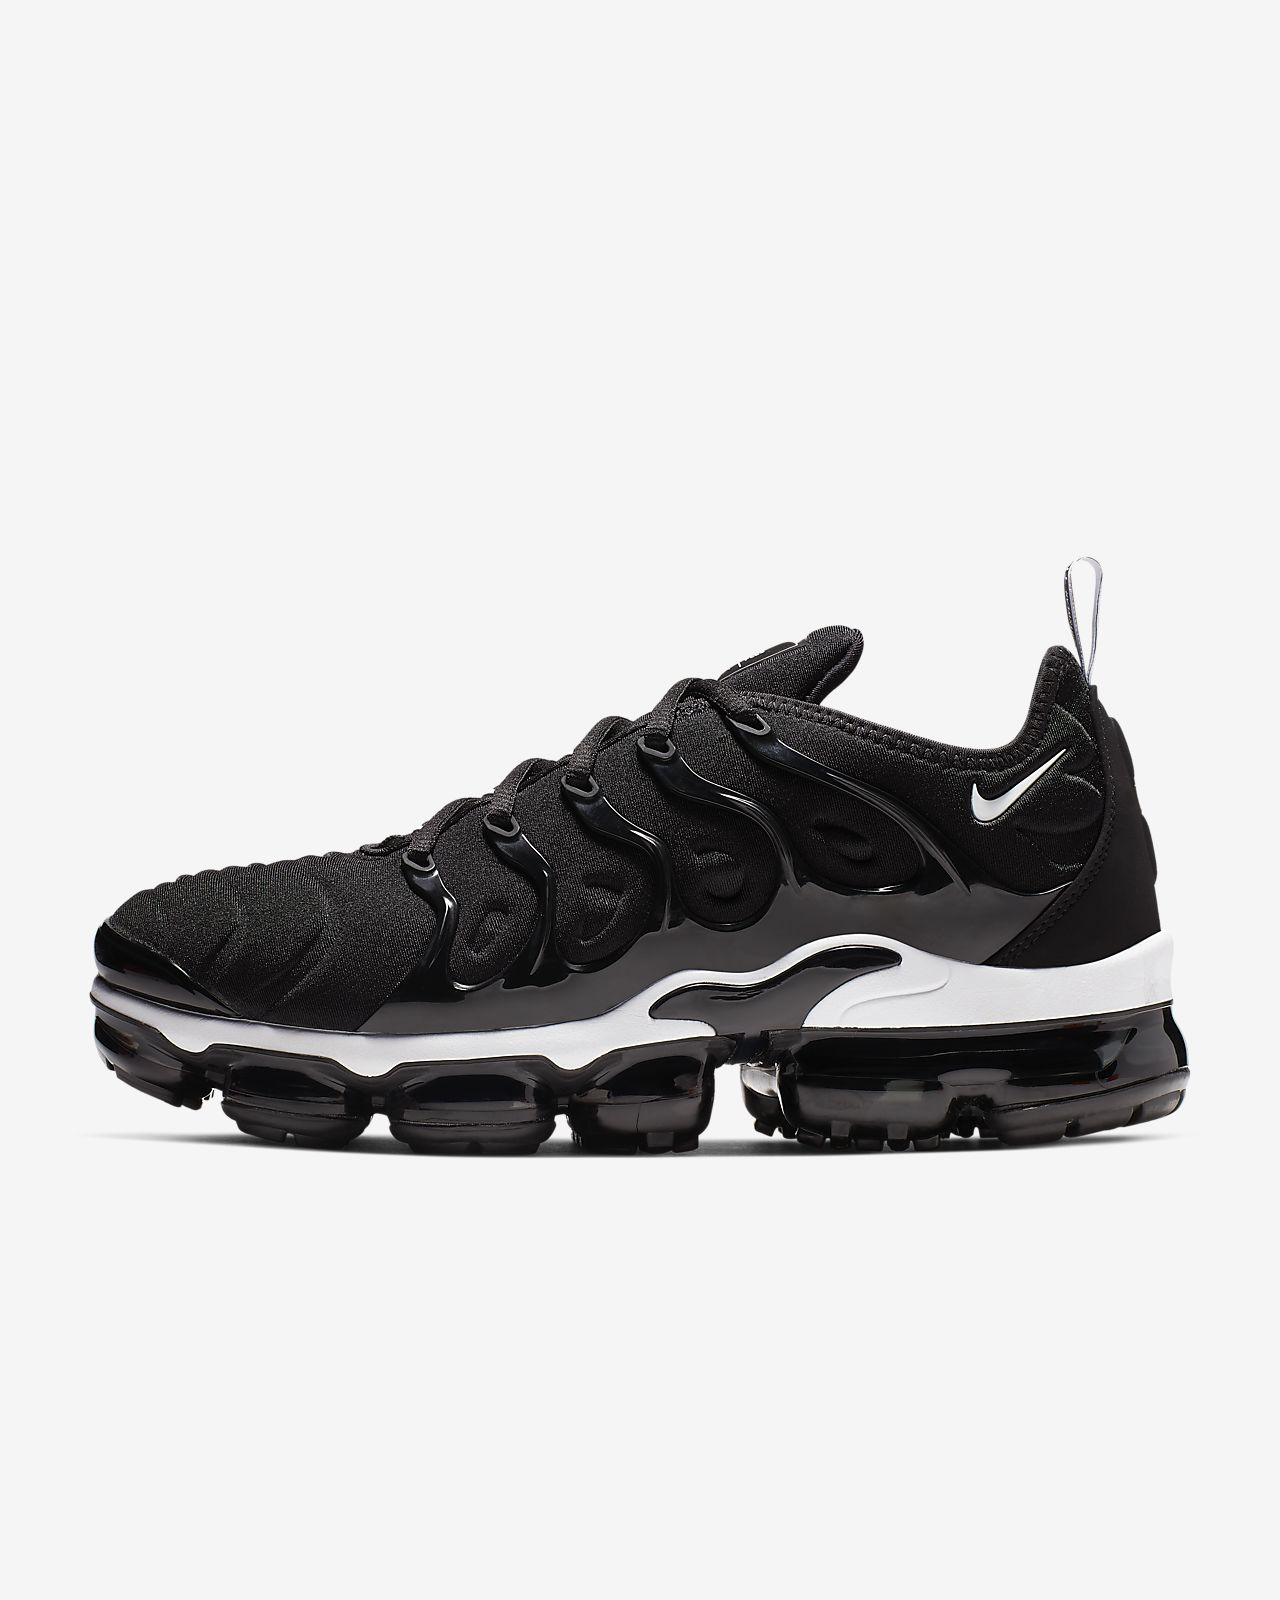 ff81bab35d0e3 Nike Air VaporMax Plus Men s Shoe. Nike.com CA